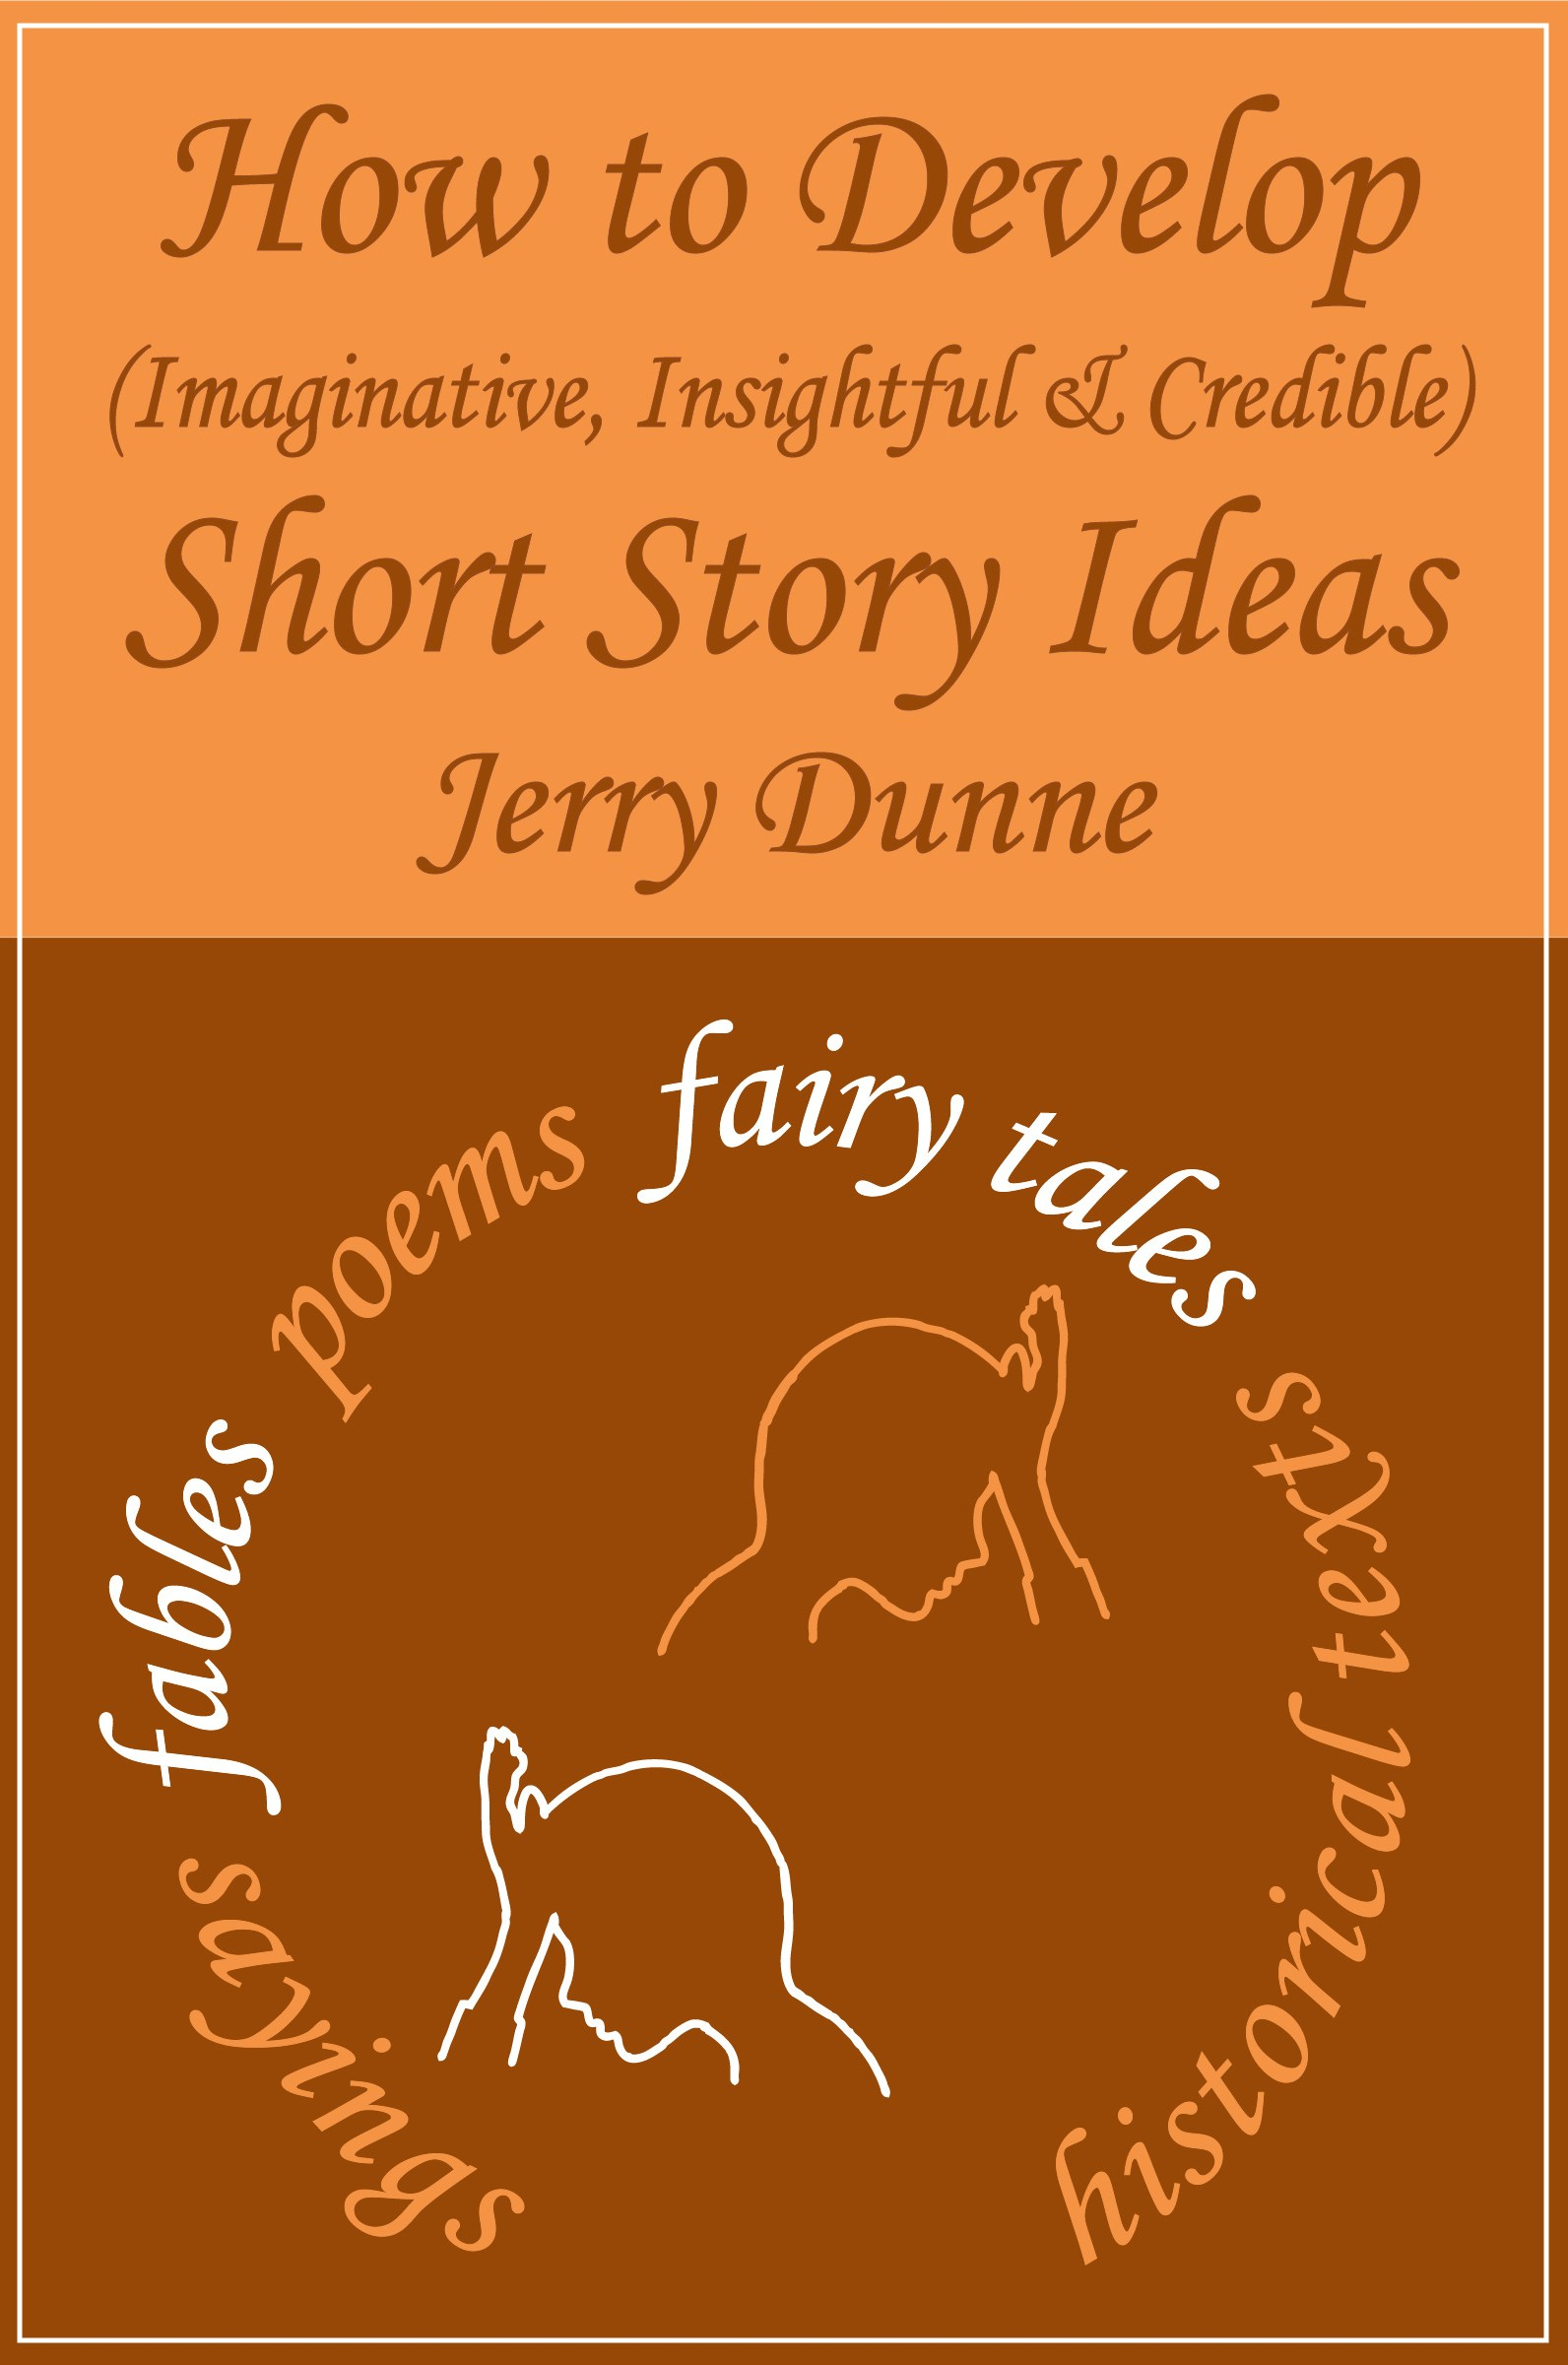 how to develop (imaginative, insightful & credible) short story